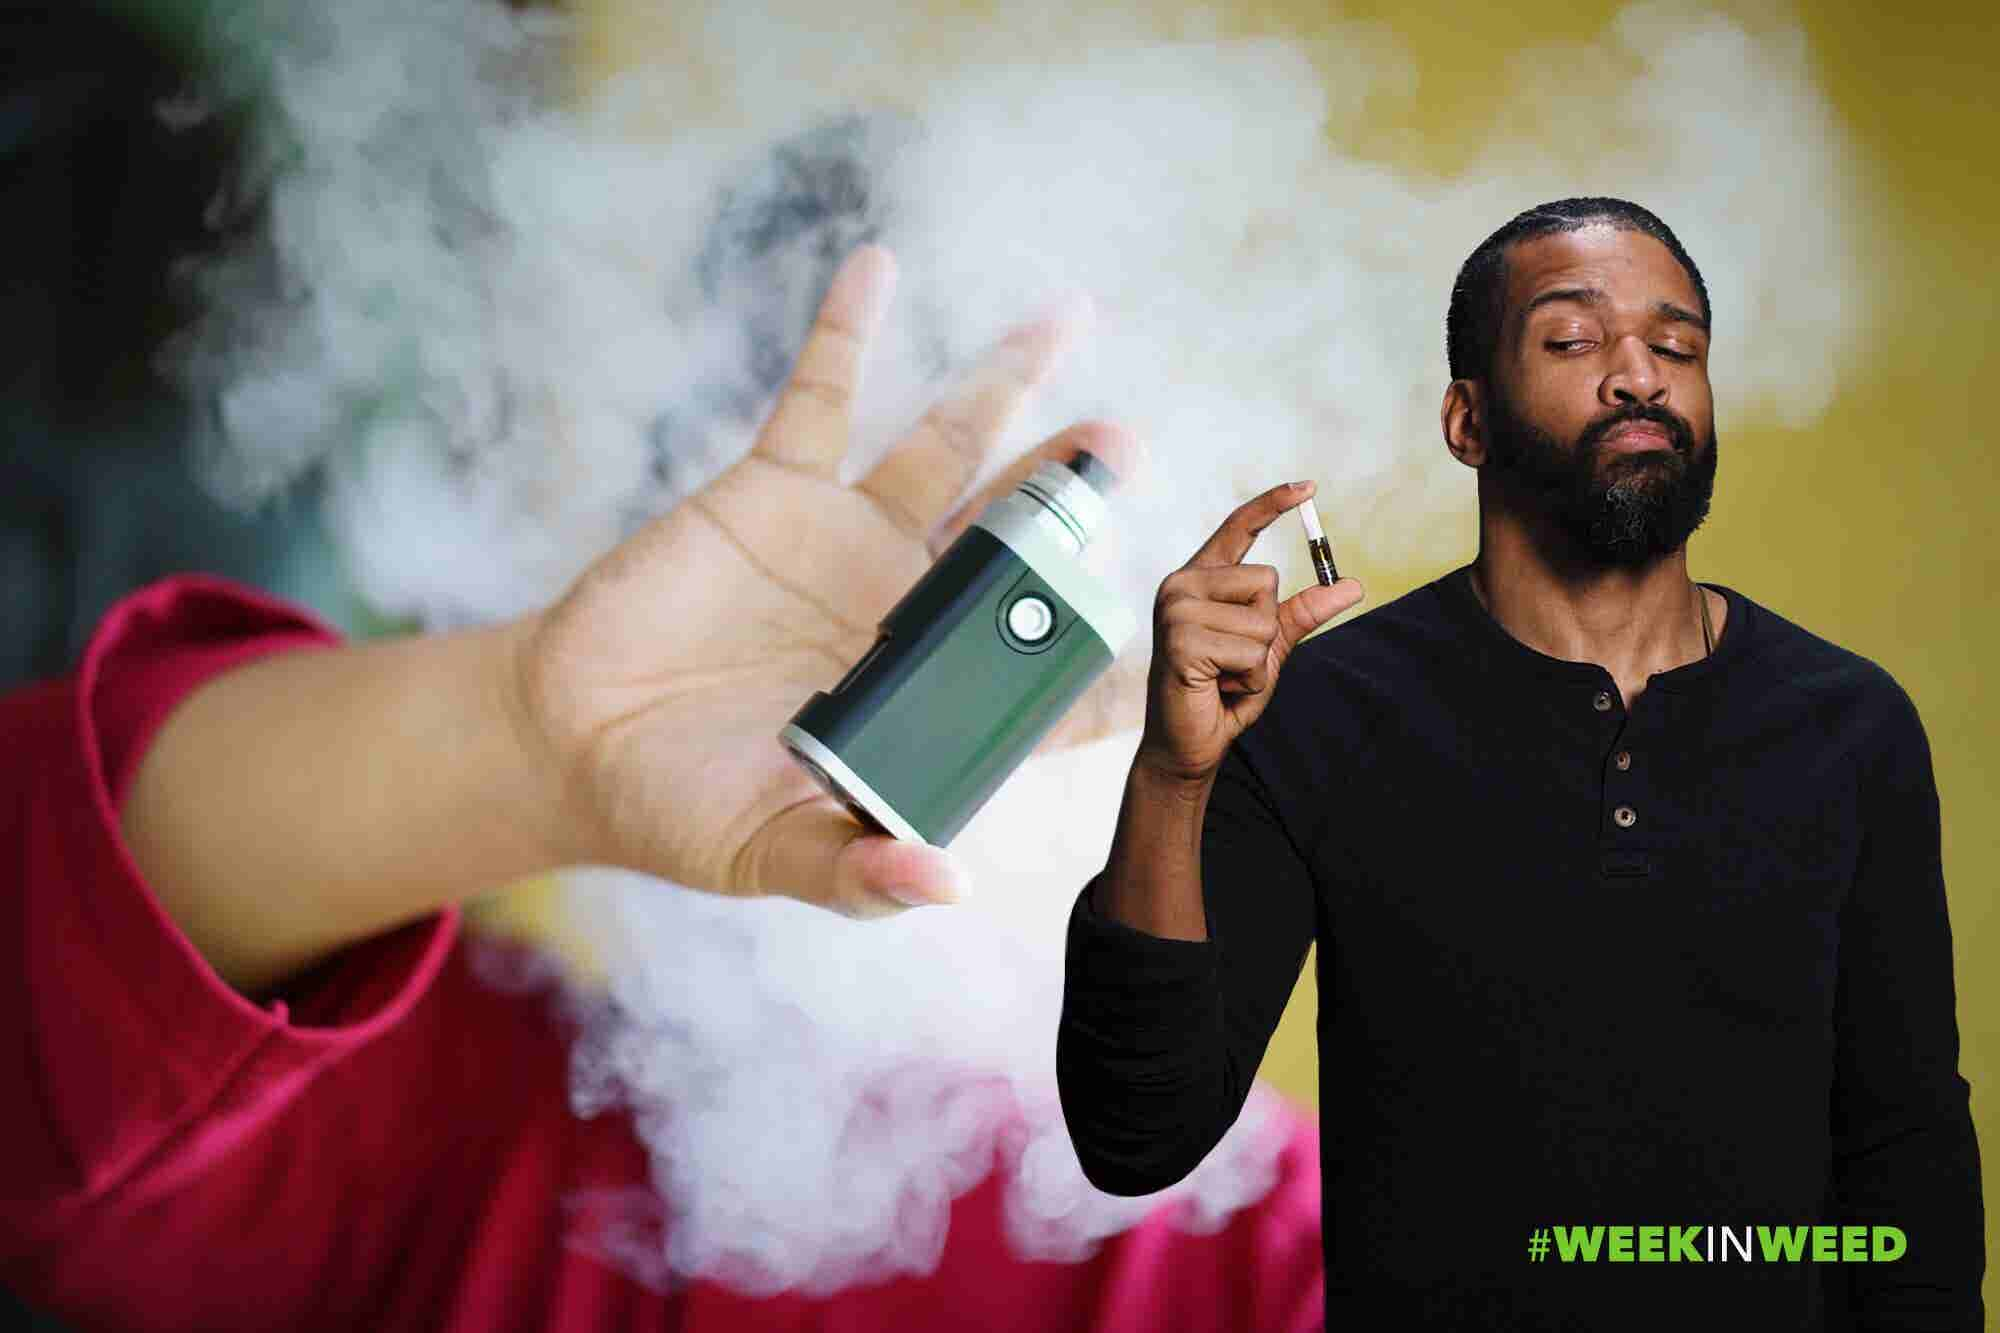 This Week in Weed: What's In Your Vape Cart?